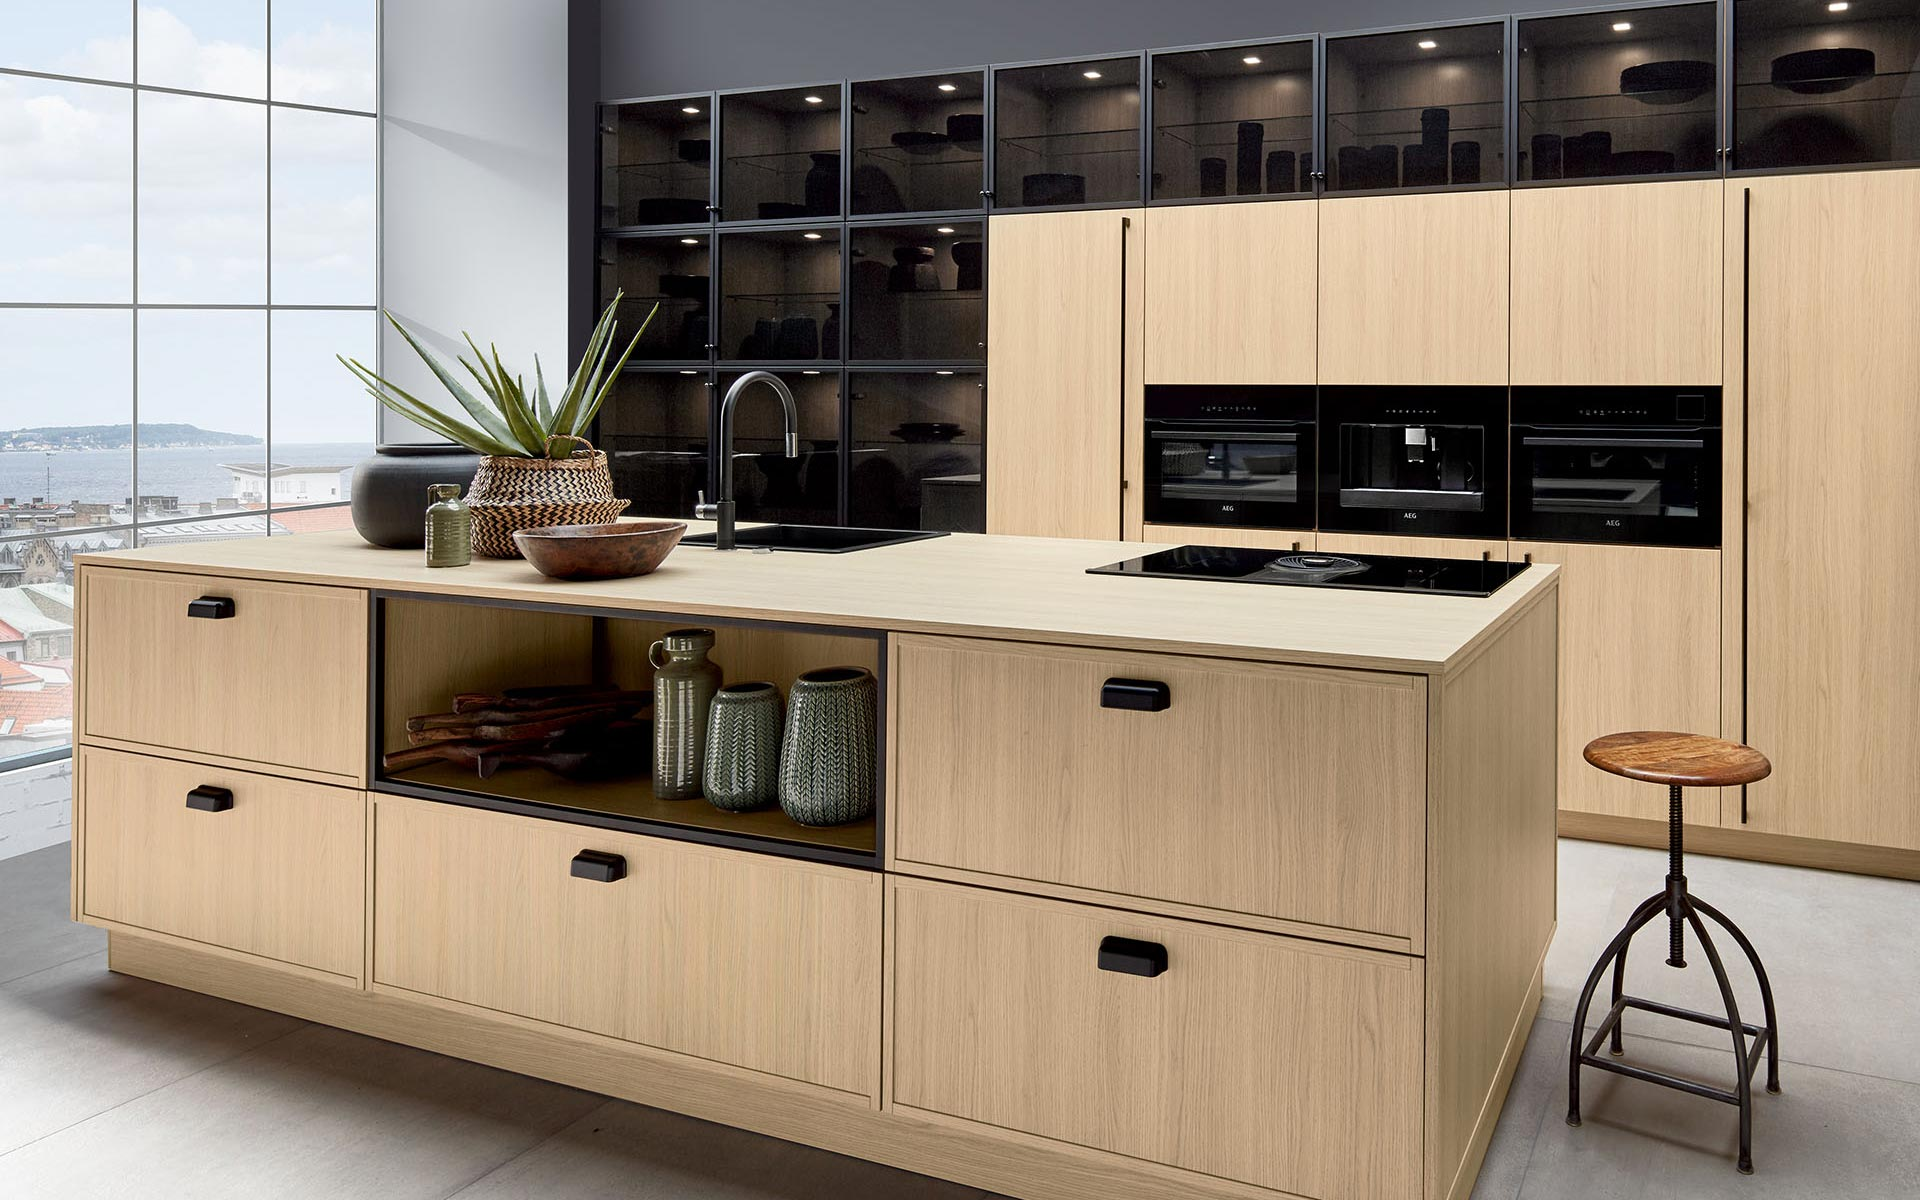 Toronto: Kitchens from Germany, Europe. Vicenza Oak Claire • Smart V Vicenza Oak Claire